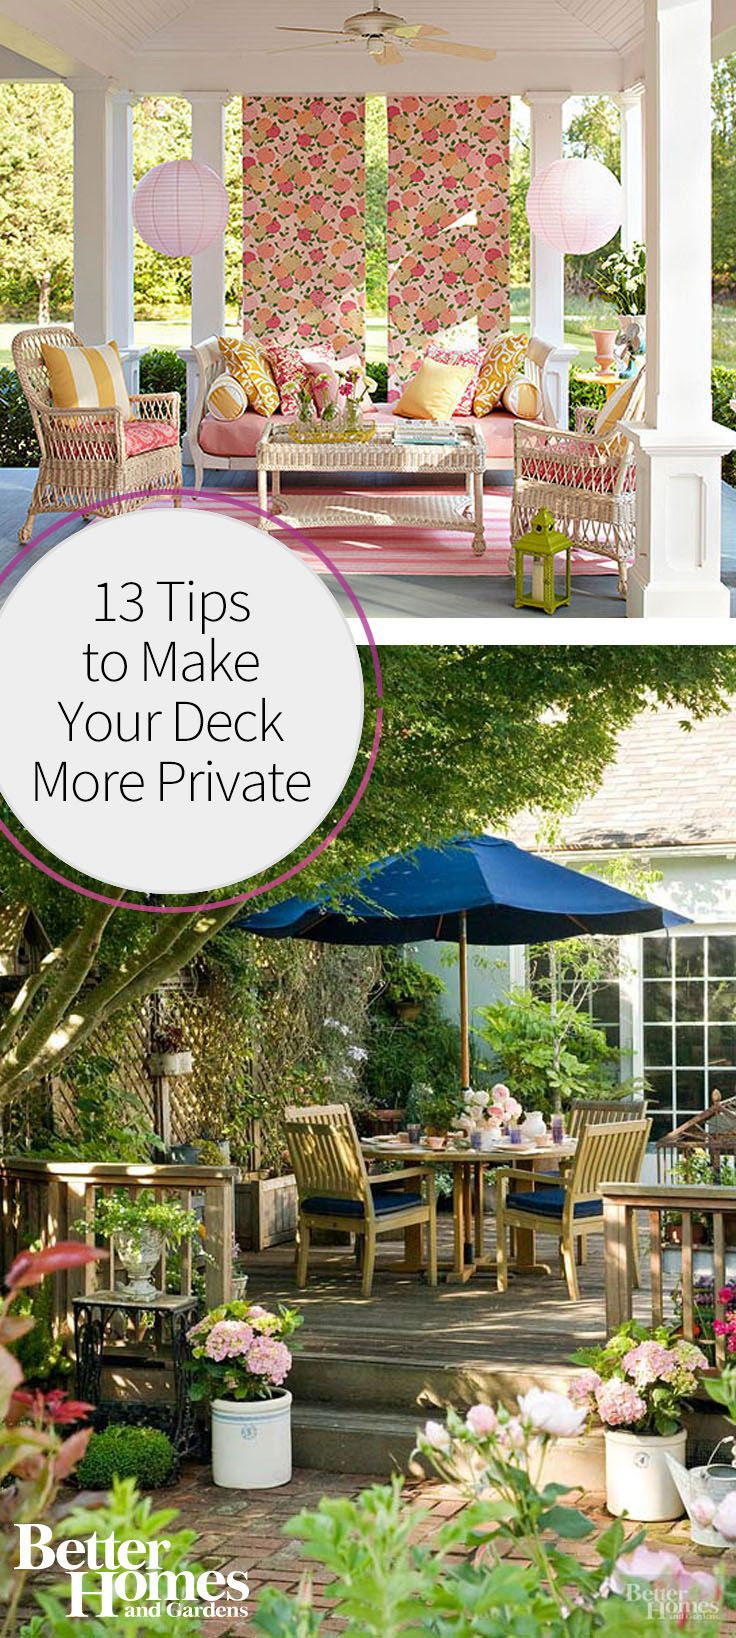 Making A Patio With Stones: Best 25+ Simple Deck Ideas Ideas On Pinterest